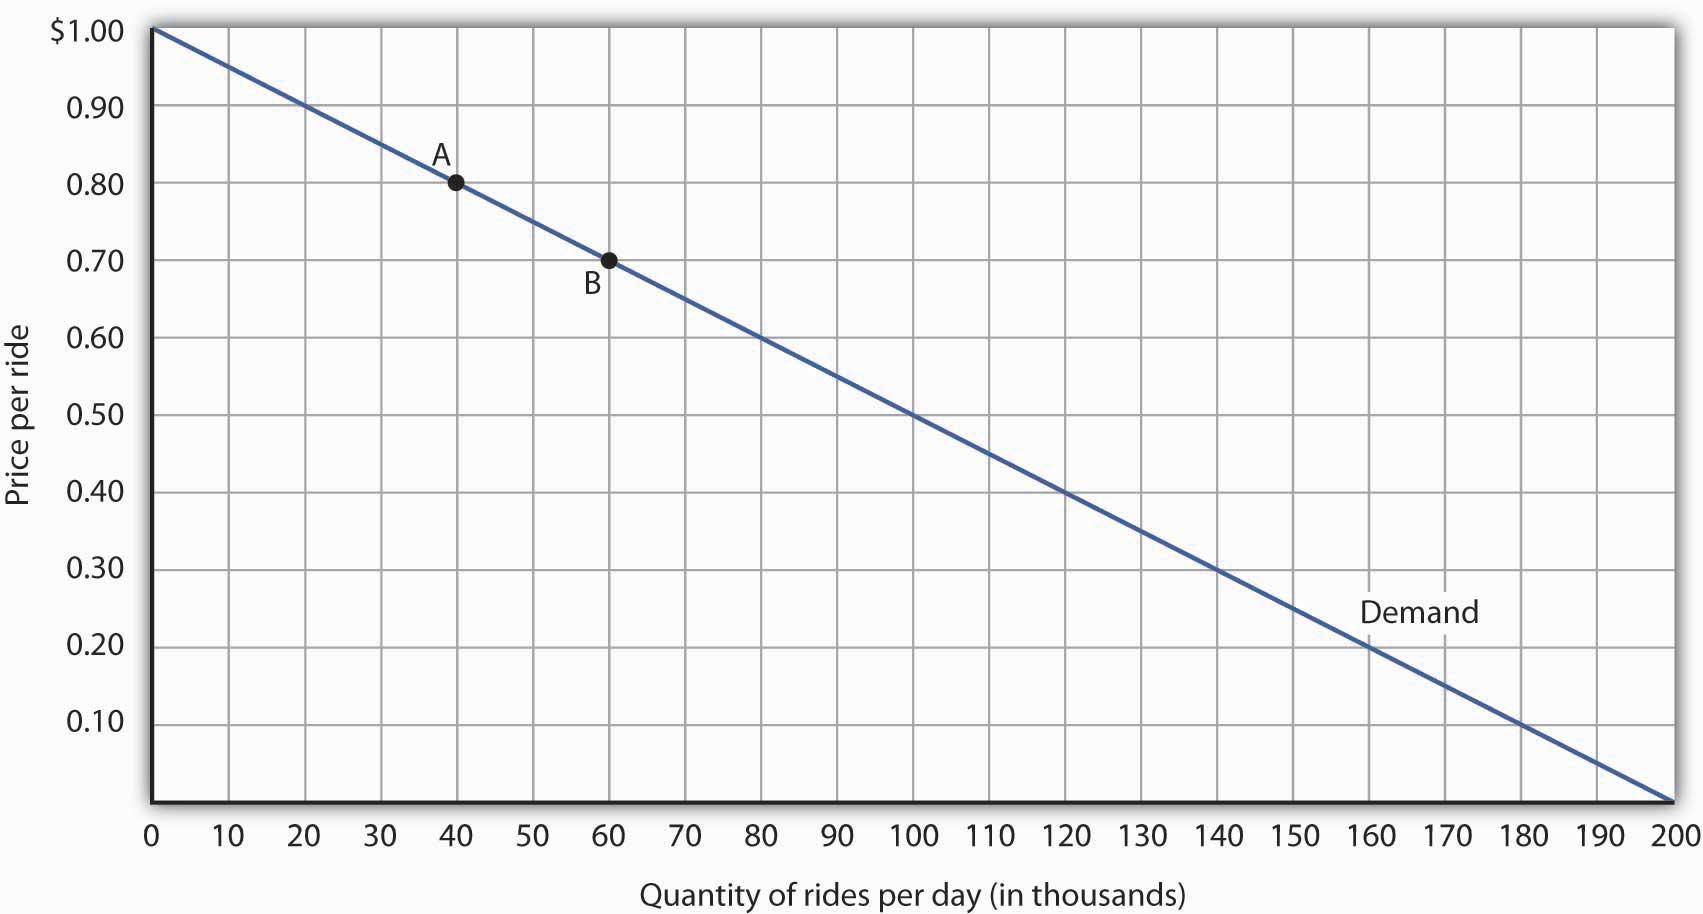 Responsiveness and Demand. The demand curve shows how changes in price lead to changes in quantity demanded. A movement from point A to point B shows that a $0.10 reduction in price increases the number of rides per day by 20,000. A movement from B to A is a $0.10 increase in price, which reduces quantity demanded by 20,000 rides per day.